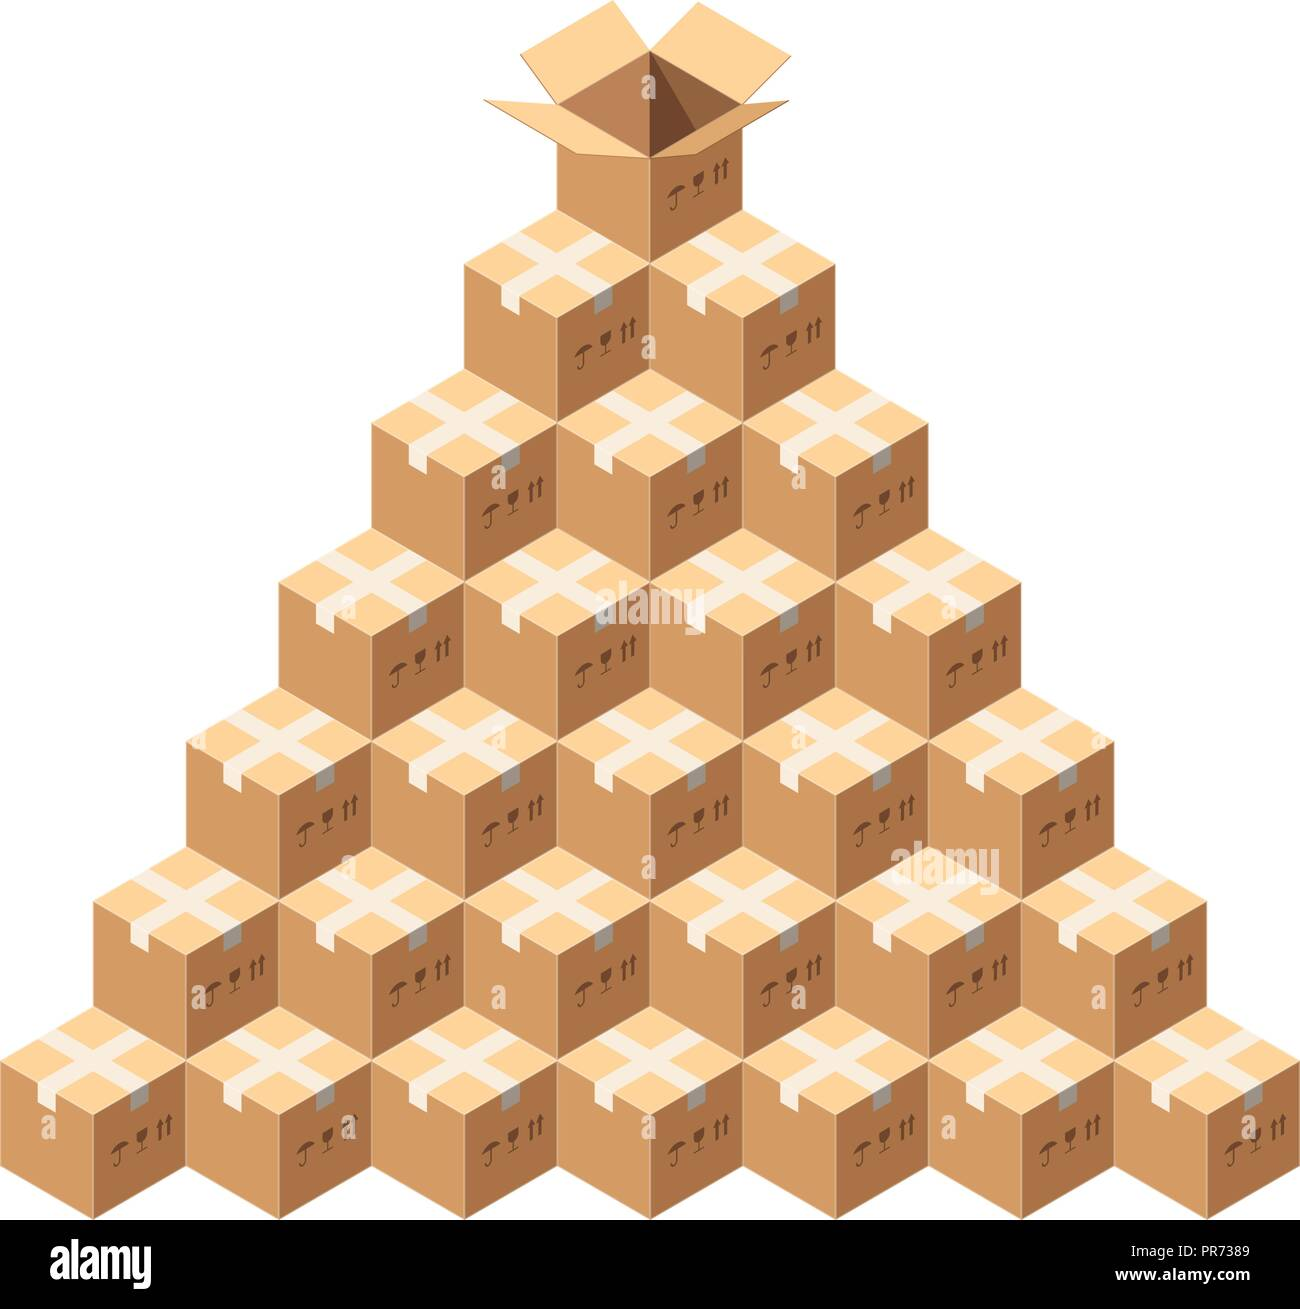 Isometric Vector Packages. Whole Pile of Taped Parcels. Pyramid of Cardboard Boxes Isolated on White. All Boxes are Sealed, One Uncovered Box at the Top. Postal Parcel Delivery Concept. - Stock Vector